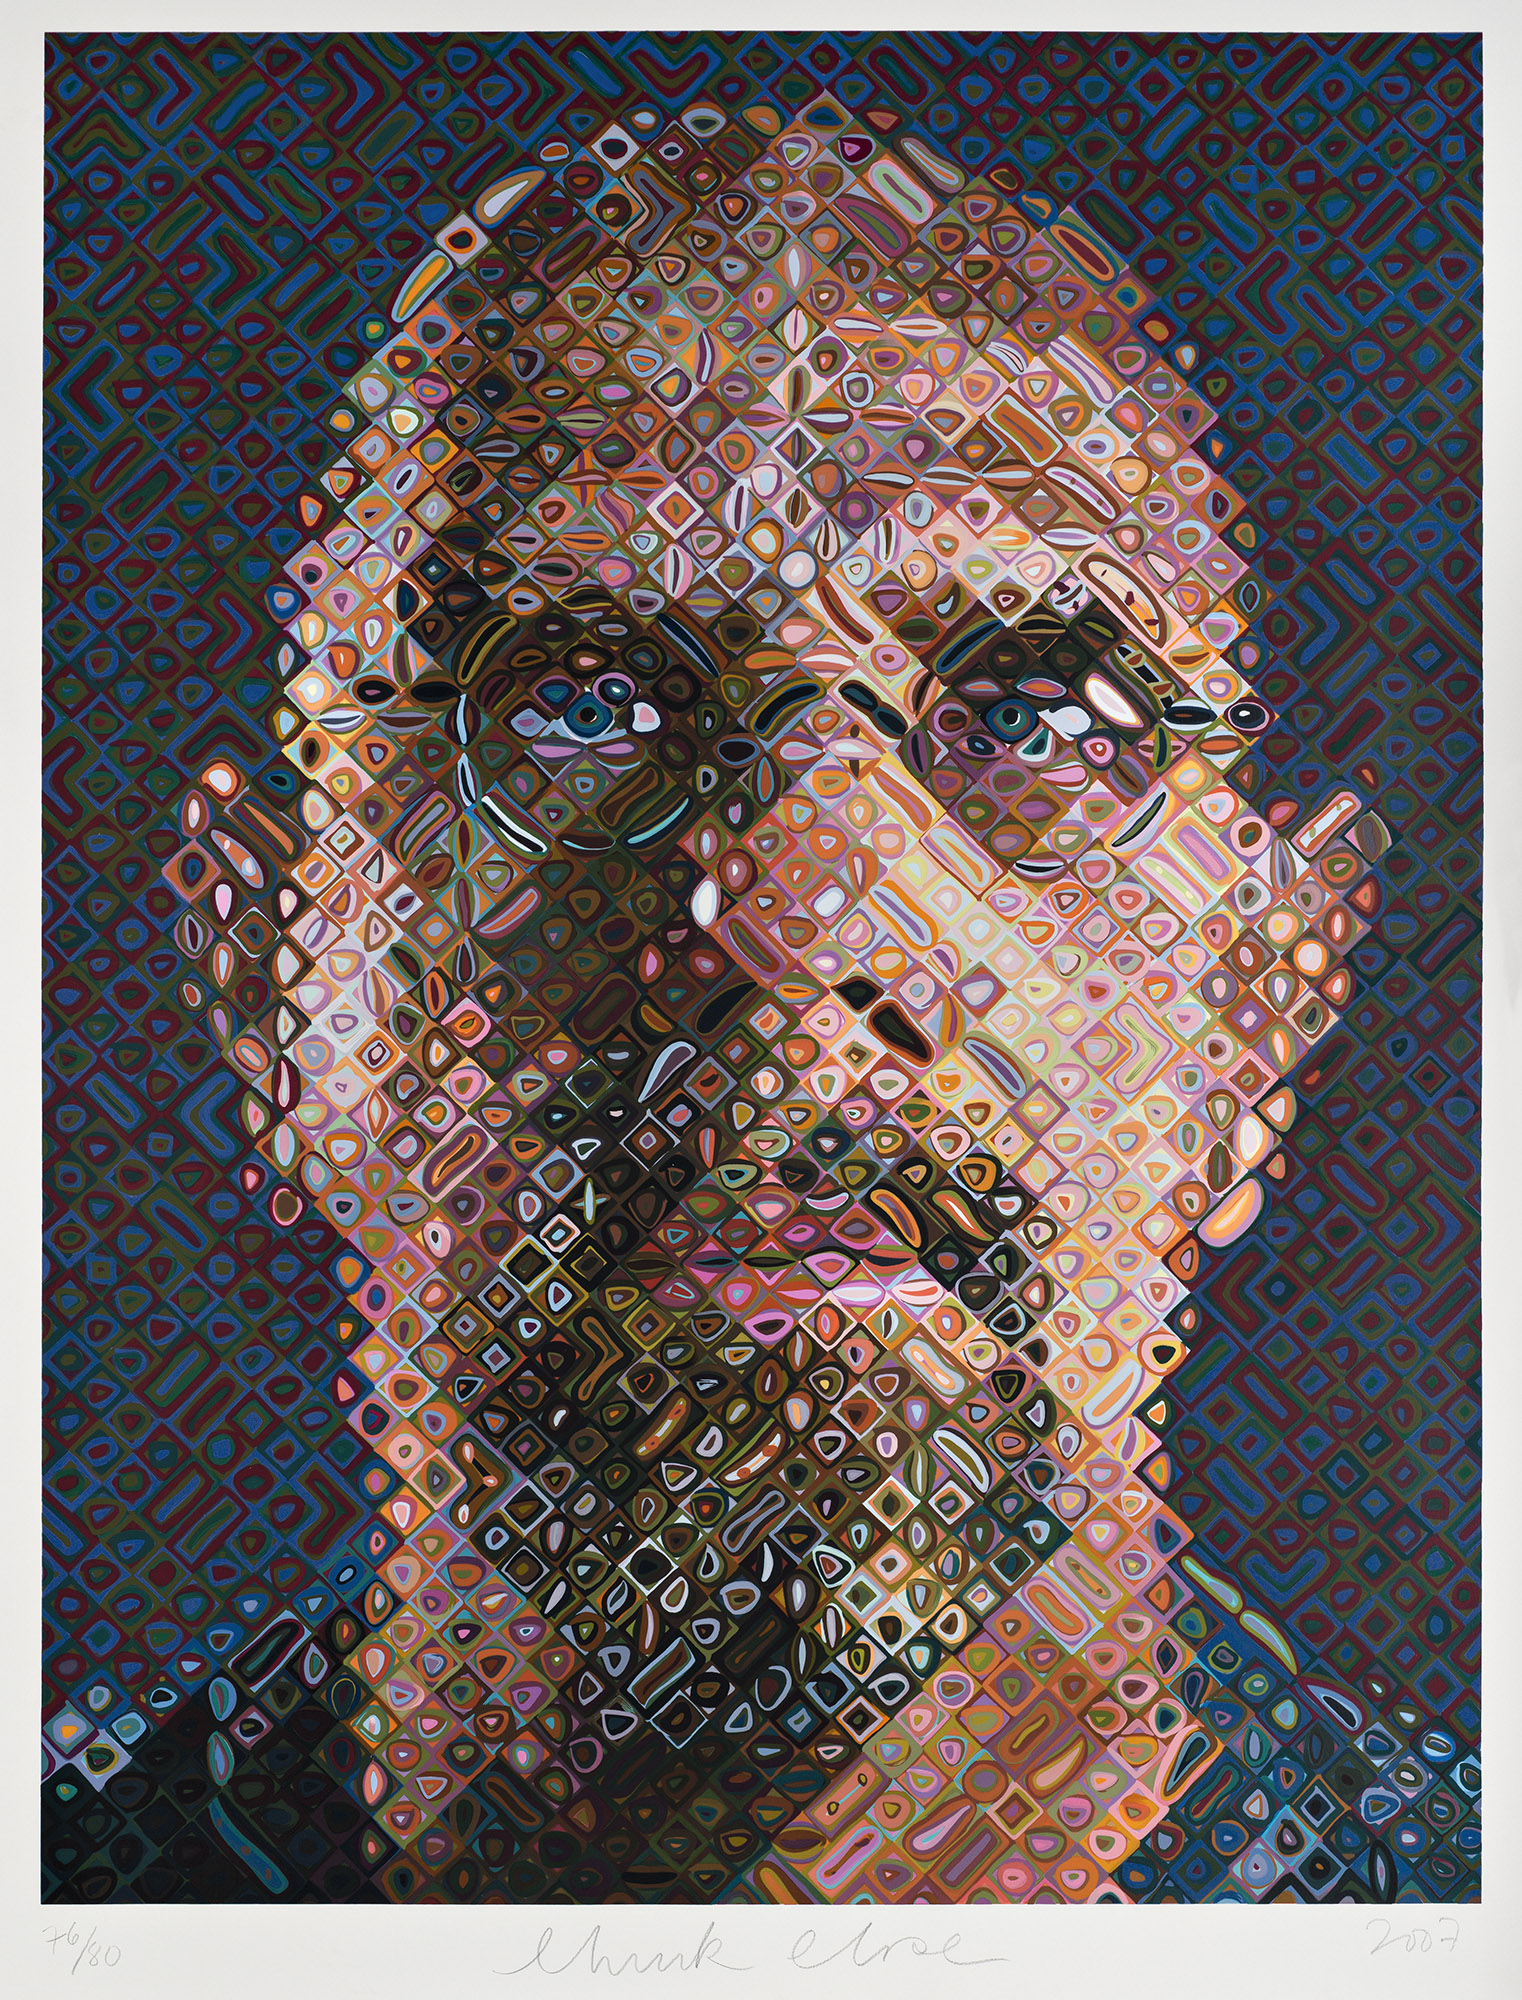 Chuck Close American, born 1940 Self-Portrait, 2007 203-color screenprint; 74 1/2 x 57 3/4 in. Wadsworth Atheneum Museum of Art The Douglas Tracy Smith and Dorothy Potter Smith Fund, 2013.4.1